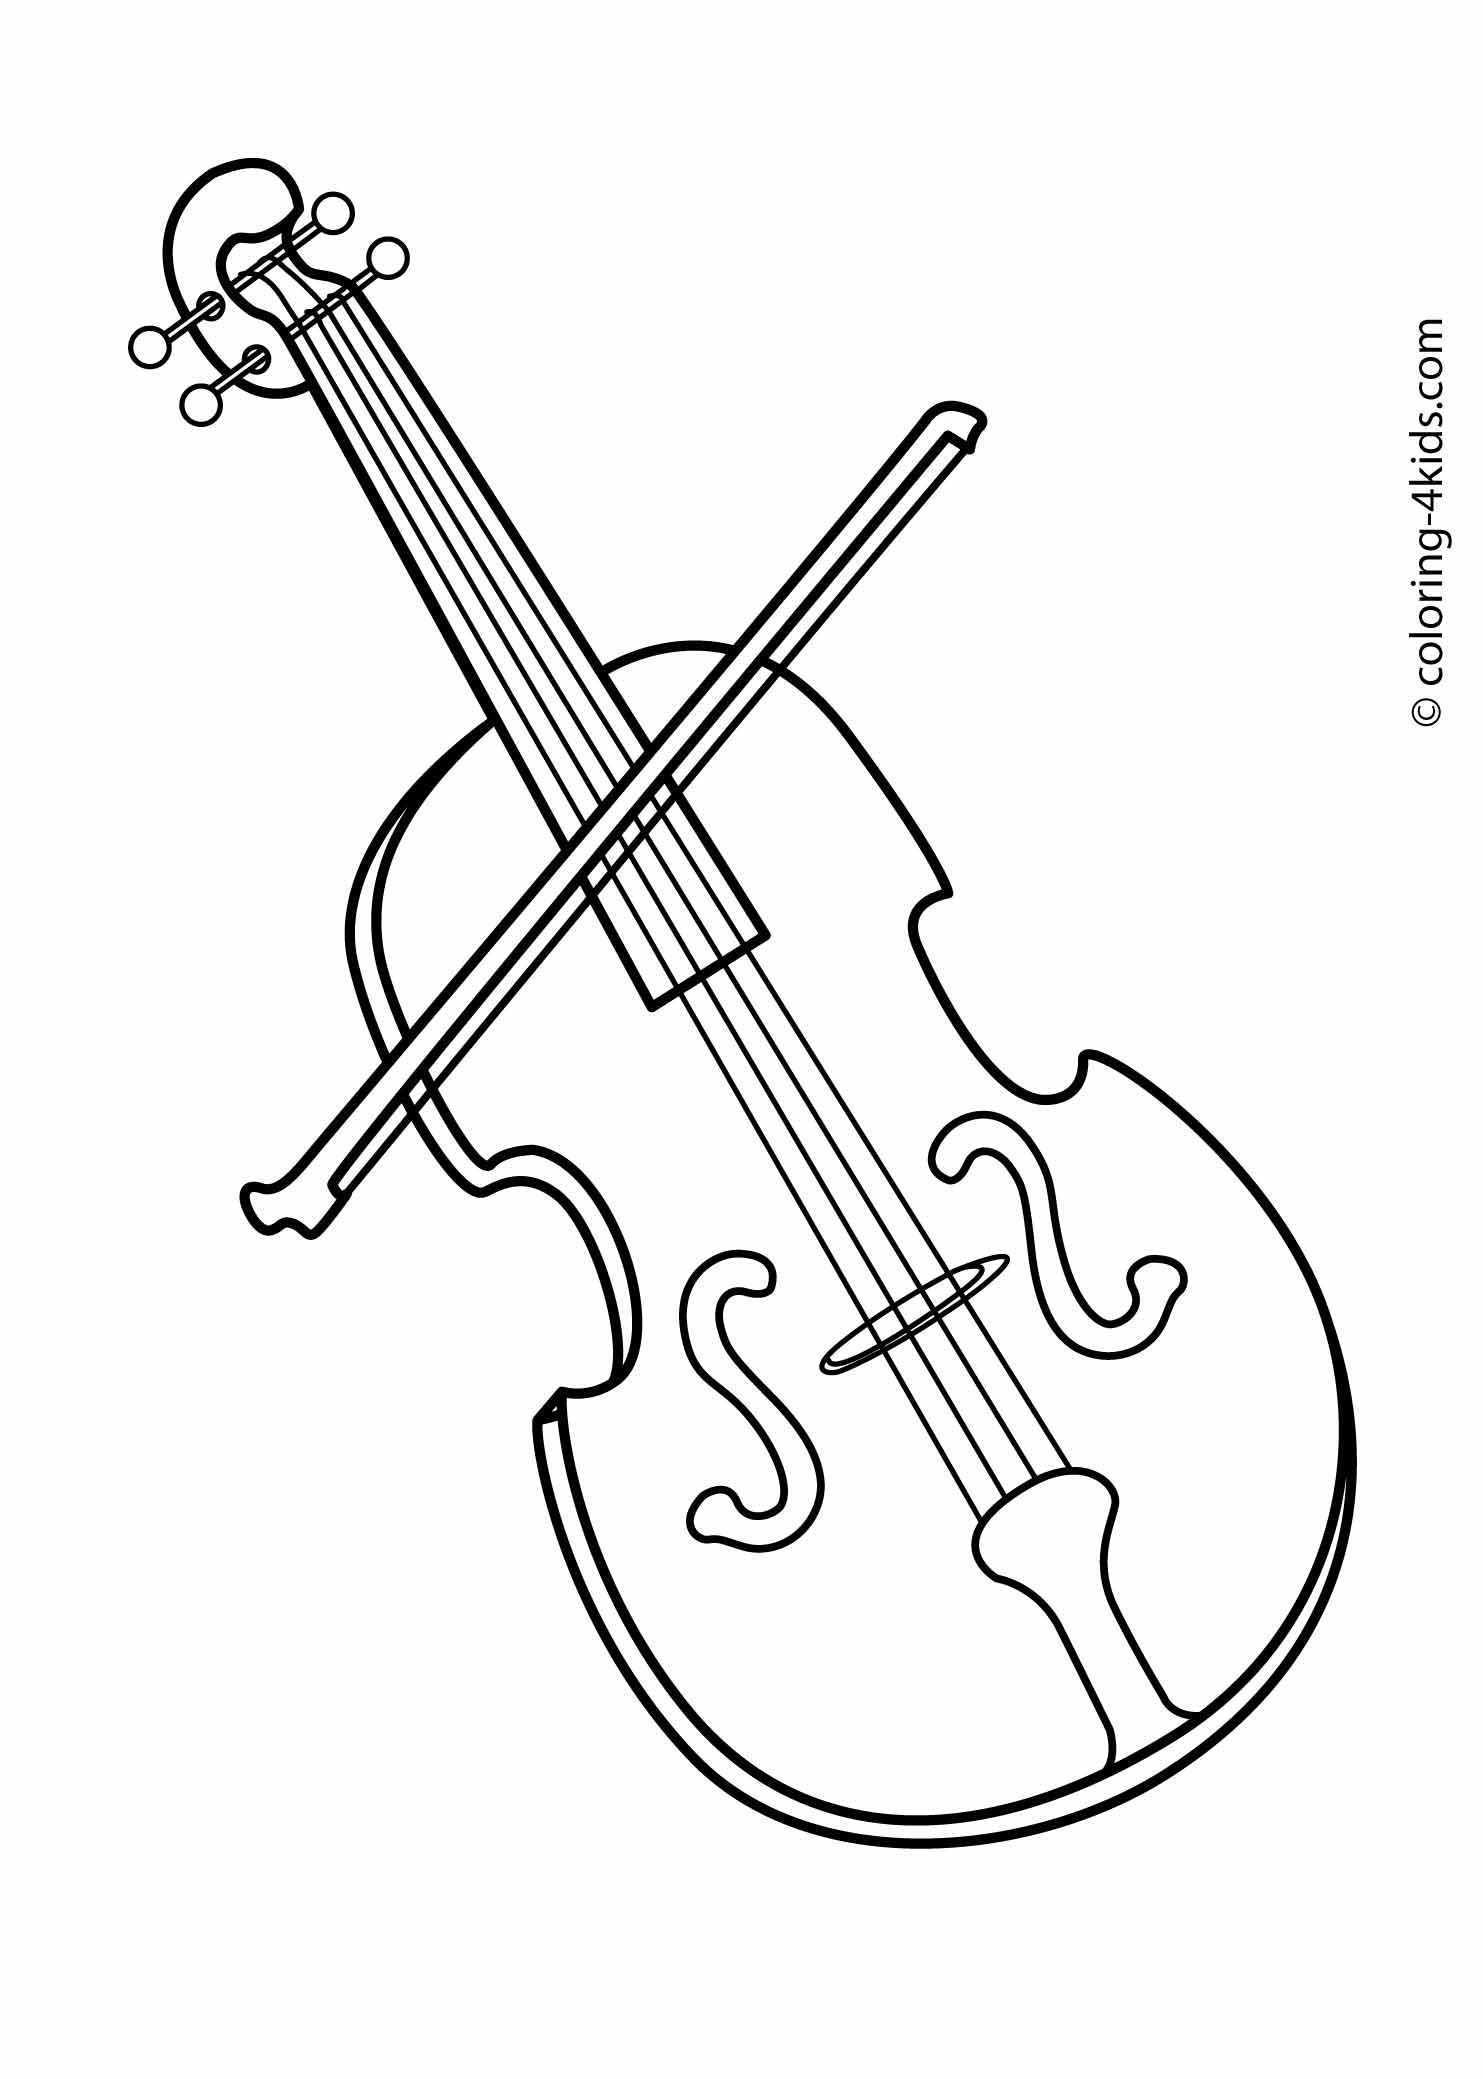 Violin Musical Instruments Coloring Pages For Kids Printable Music Coloring Music Coloring Sheets Kids Musical Instruments